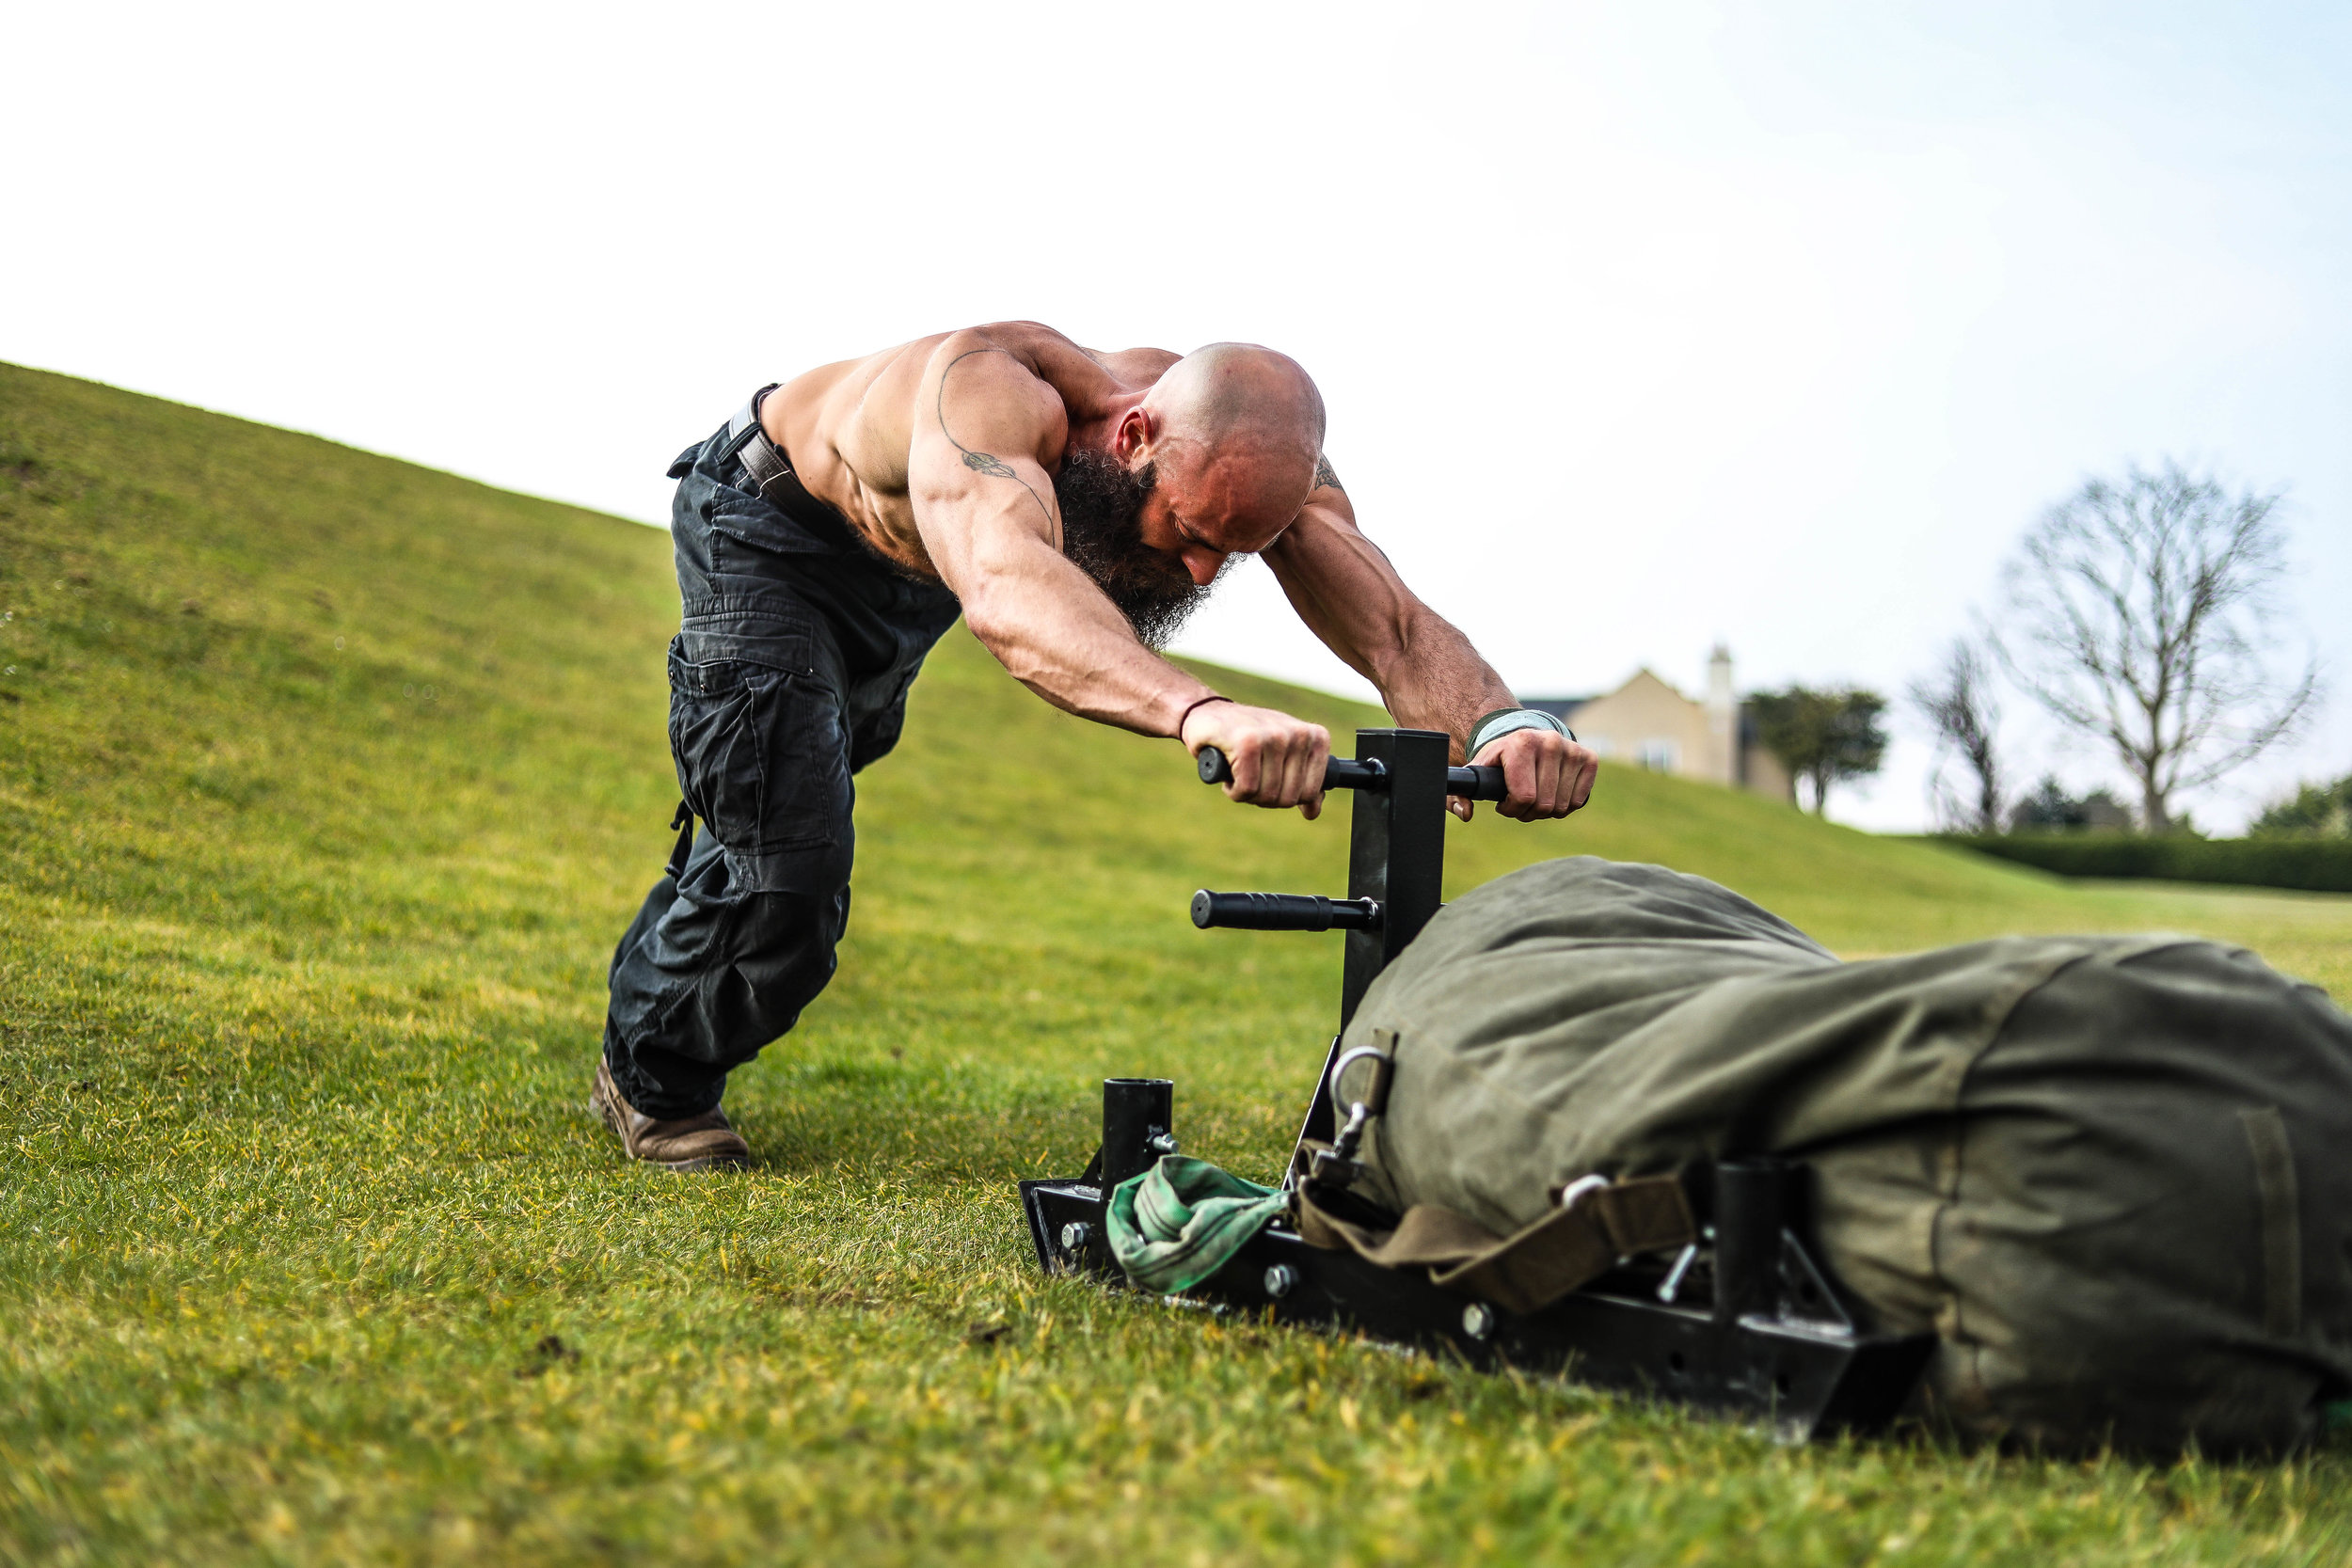 Personal trainer - Richard is a personal trainer and fitness instructor who runs bootcamps in Epsom, Surrey.  Having spent months reaching peak condition, Richard needed imagery for his online profile to help promote his business.Learn more...